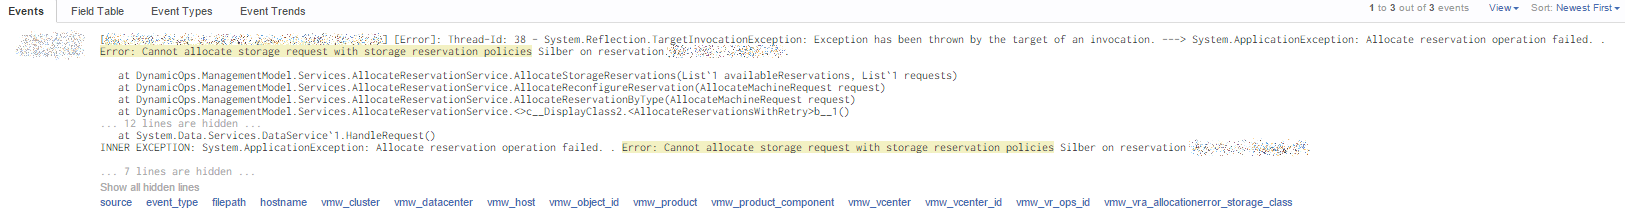 VMware vRealize Automation 6 Allocation Error - Error in Log Insight